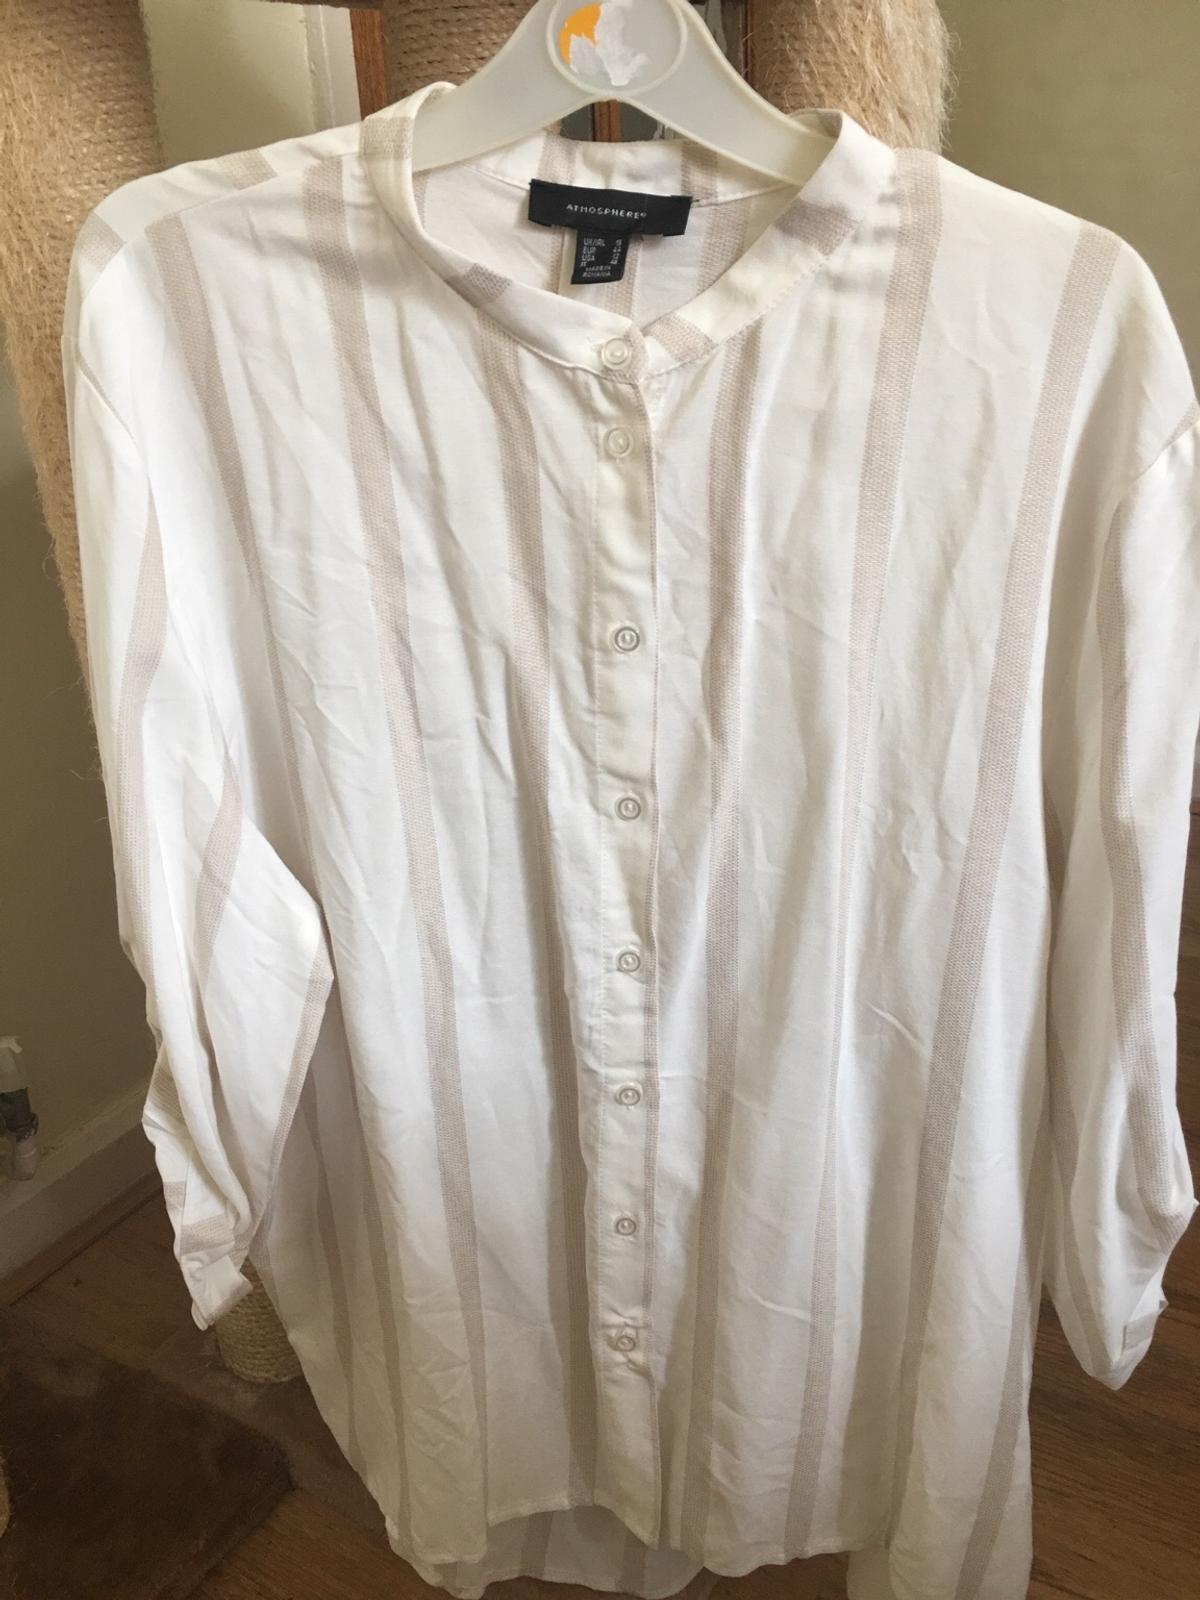 13e524f9992202 Atmosphere blouse uk size 16 in B13 Birmingham for £10.00 for sale ...